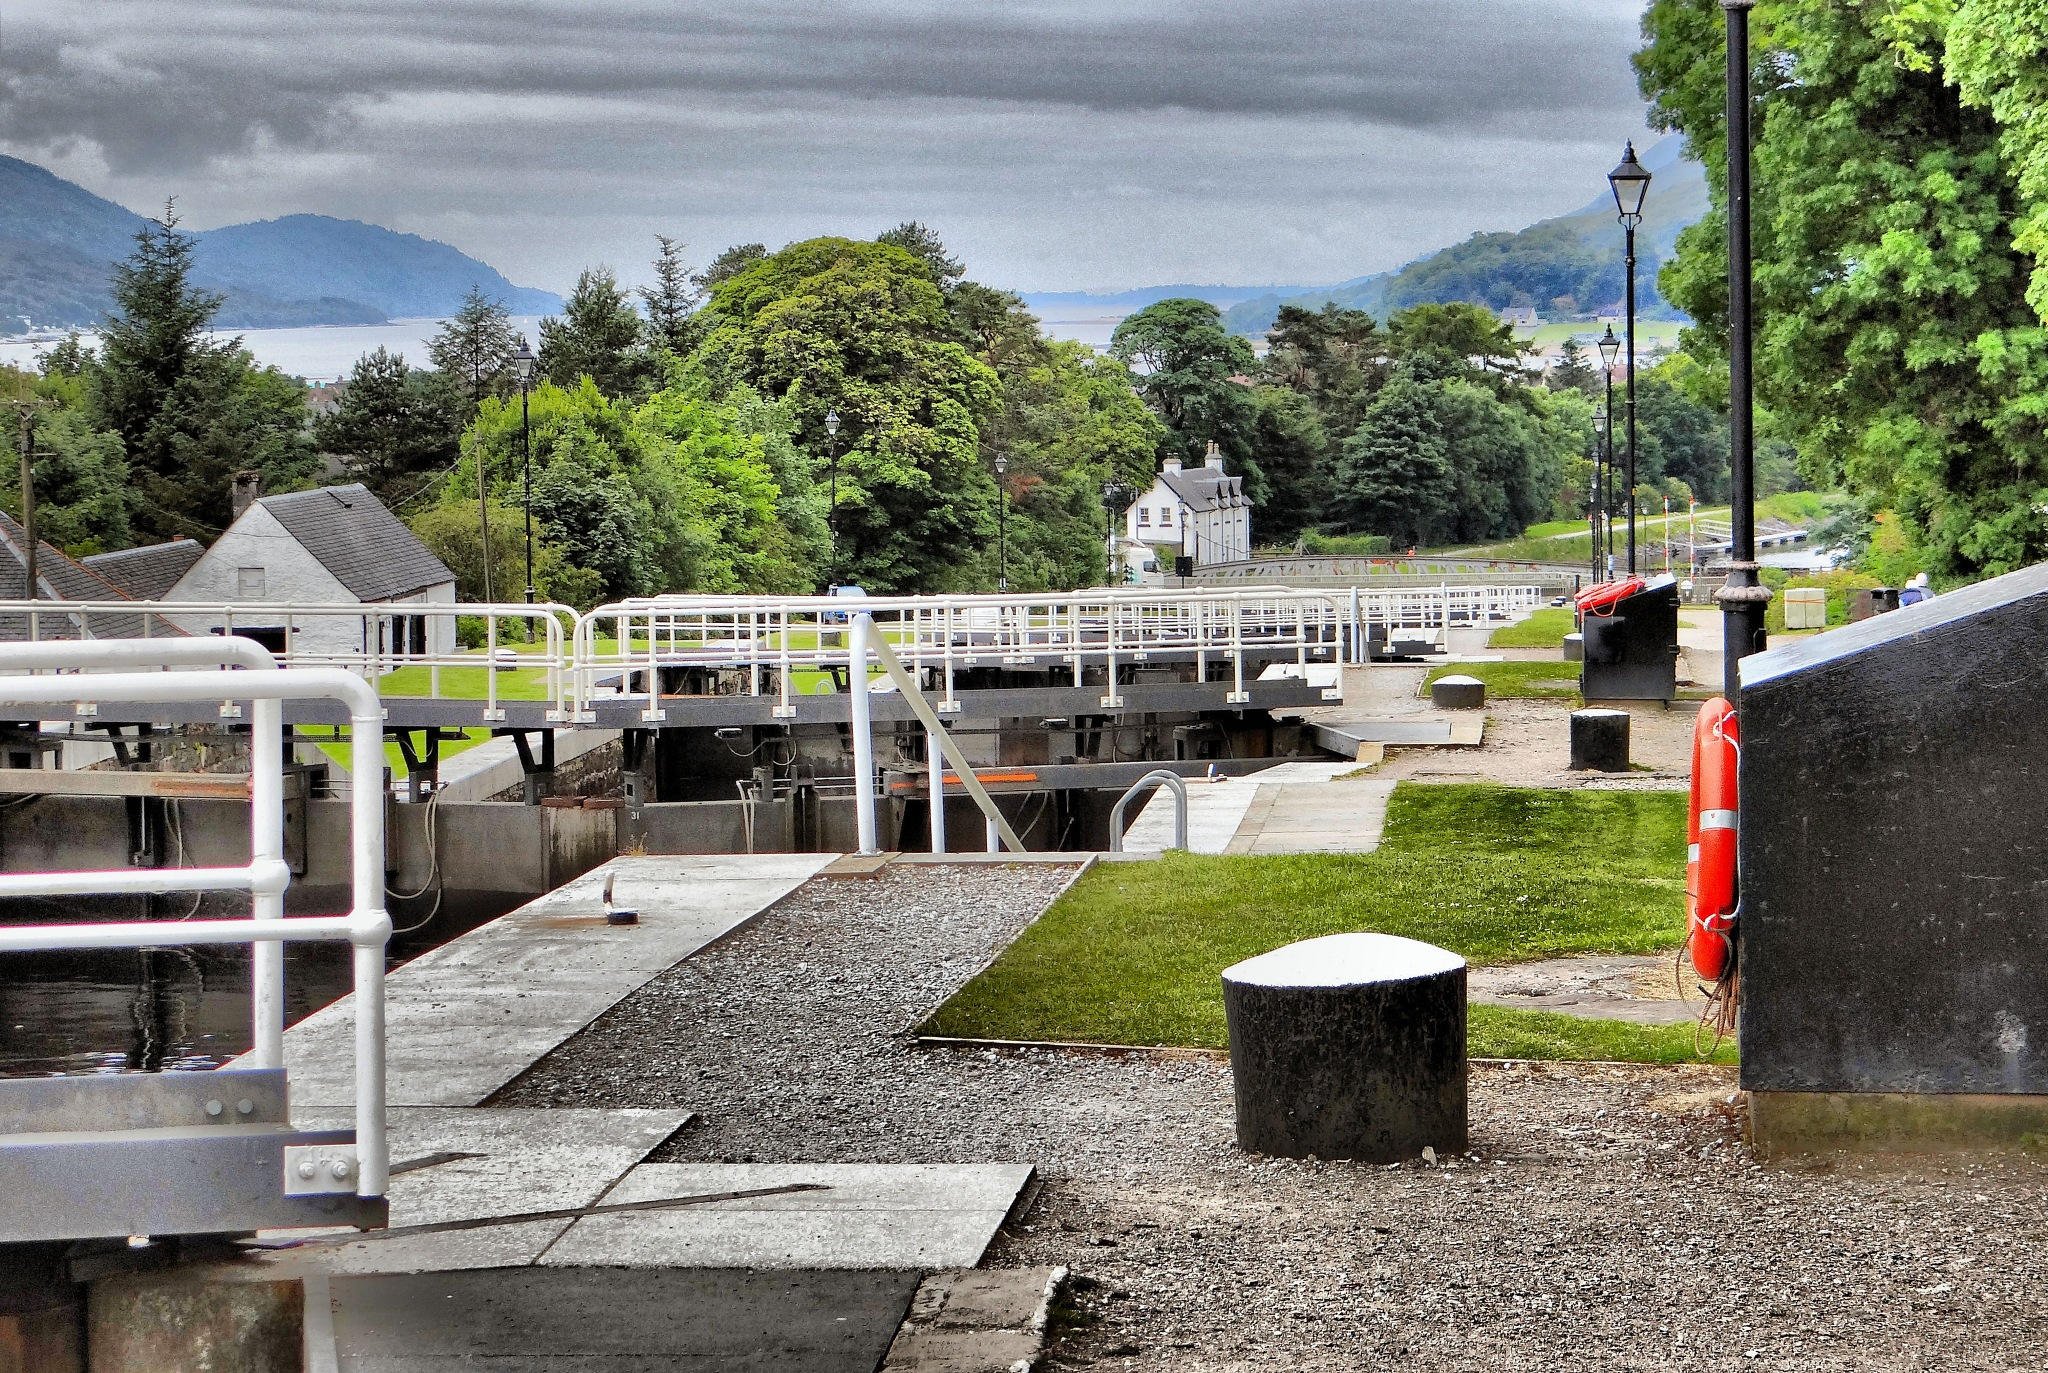 15 photos in Caledonia in search of the Loch Ness Monster by Mariano Arizzi Novelli